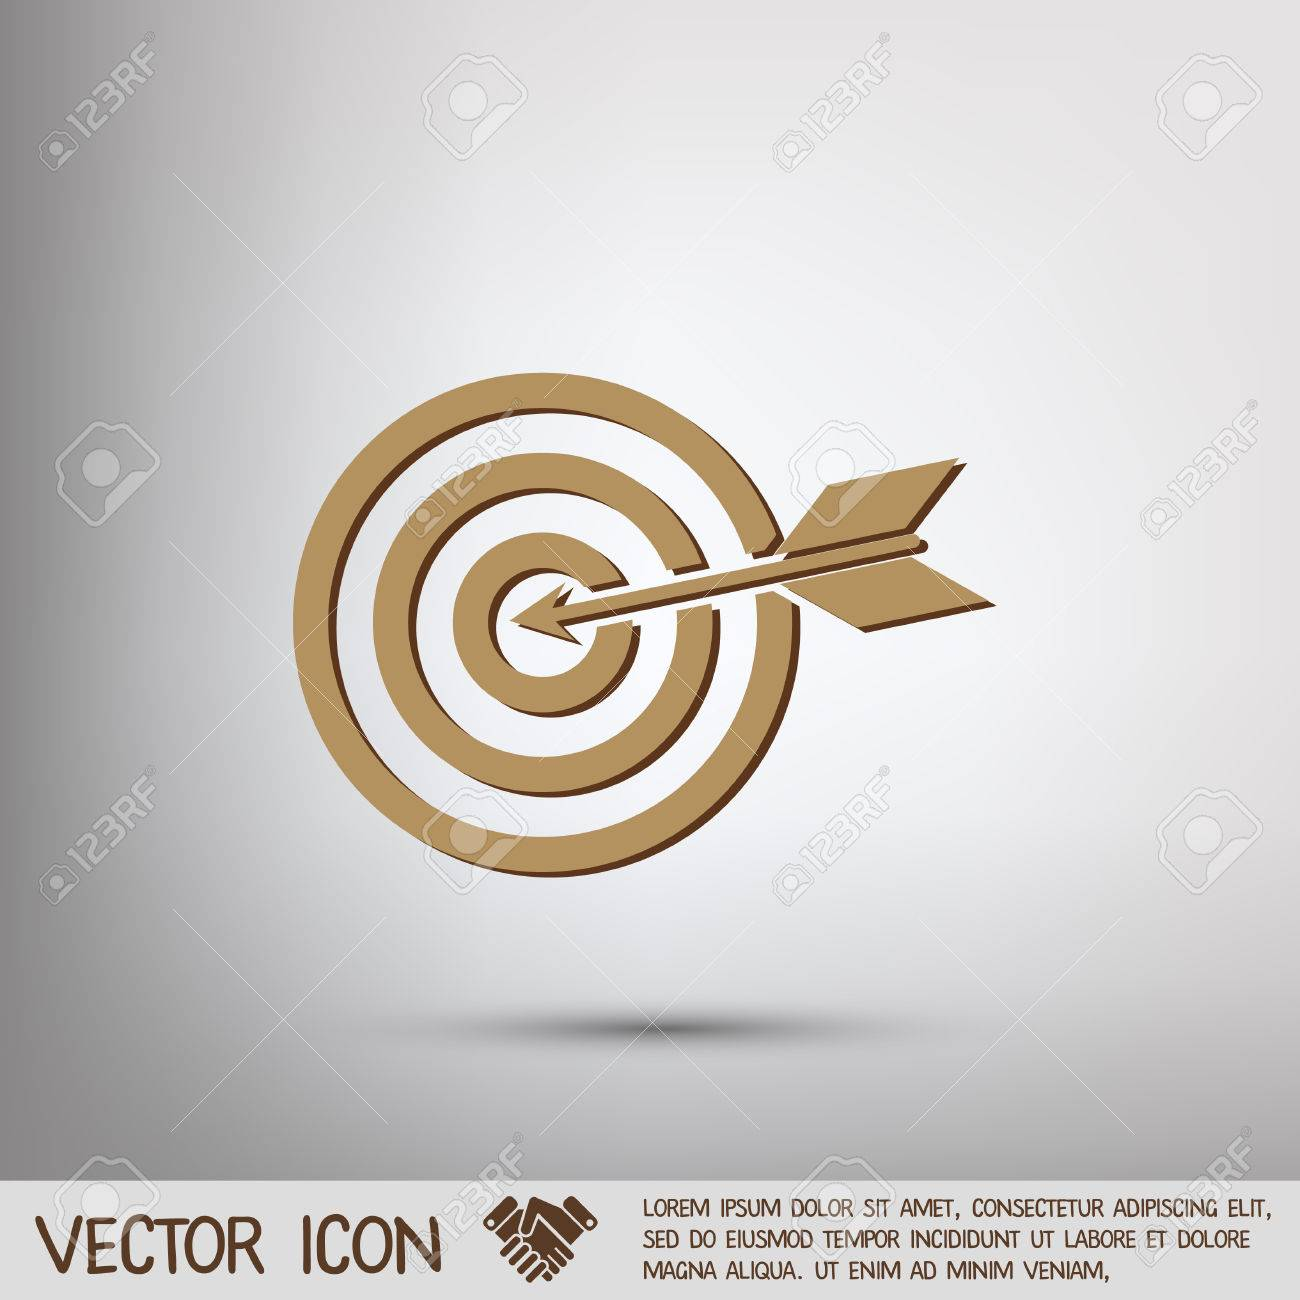 Target symbol sporty character hit the target royalty free target symbol sporty character hit the target stock vector 43629856 buycottarizona Image collections